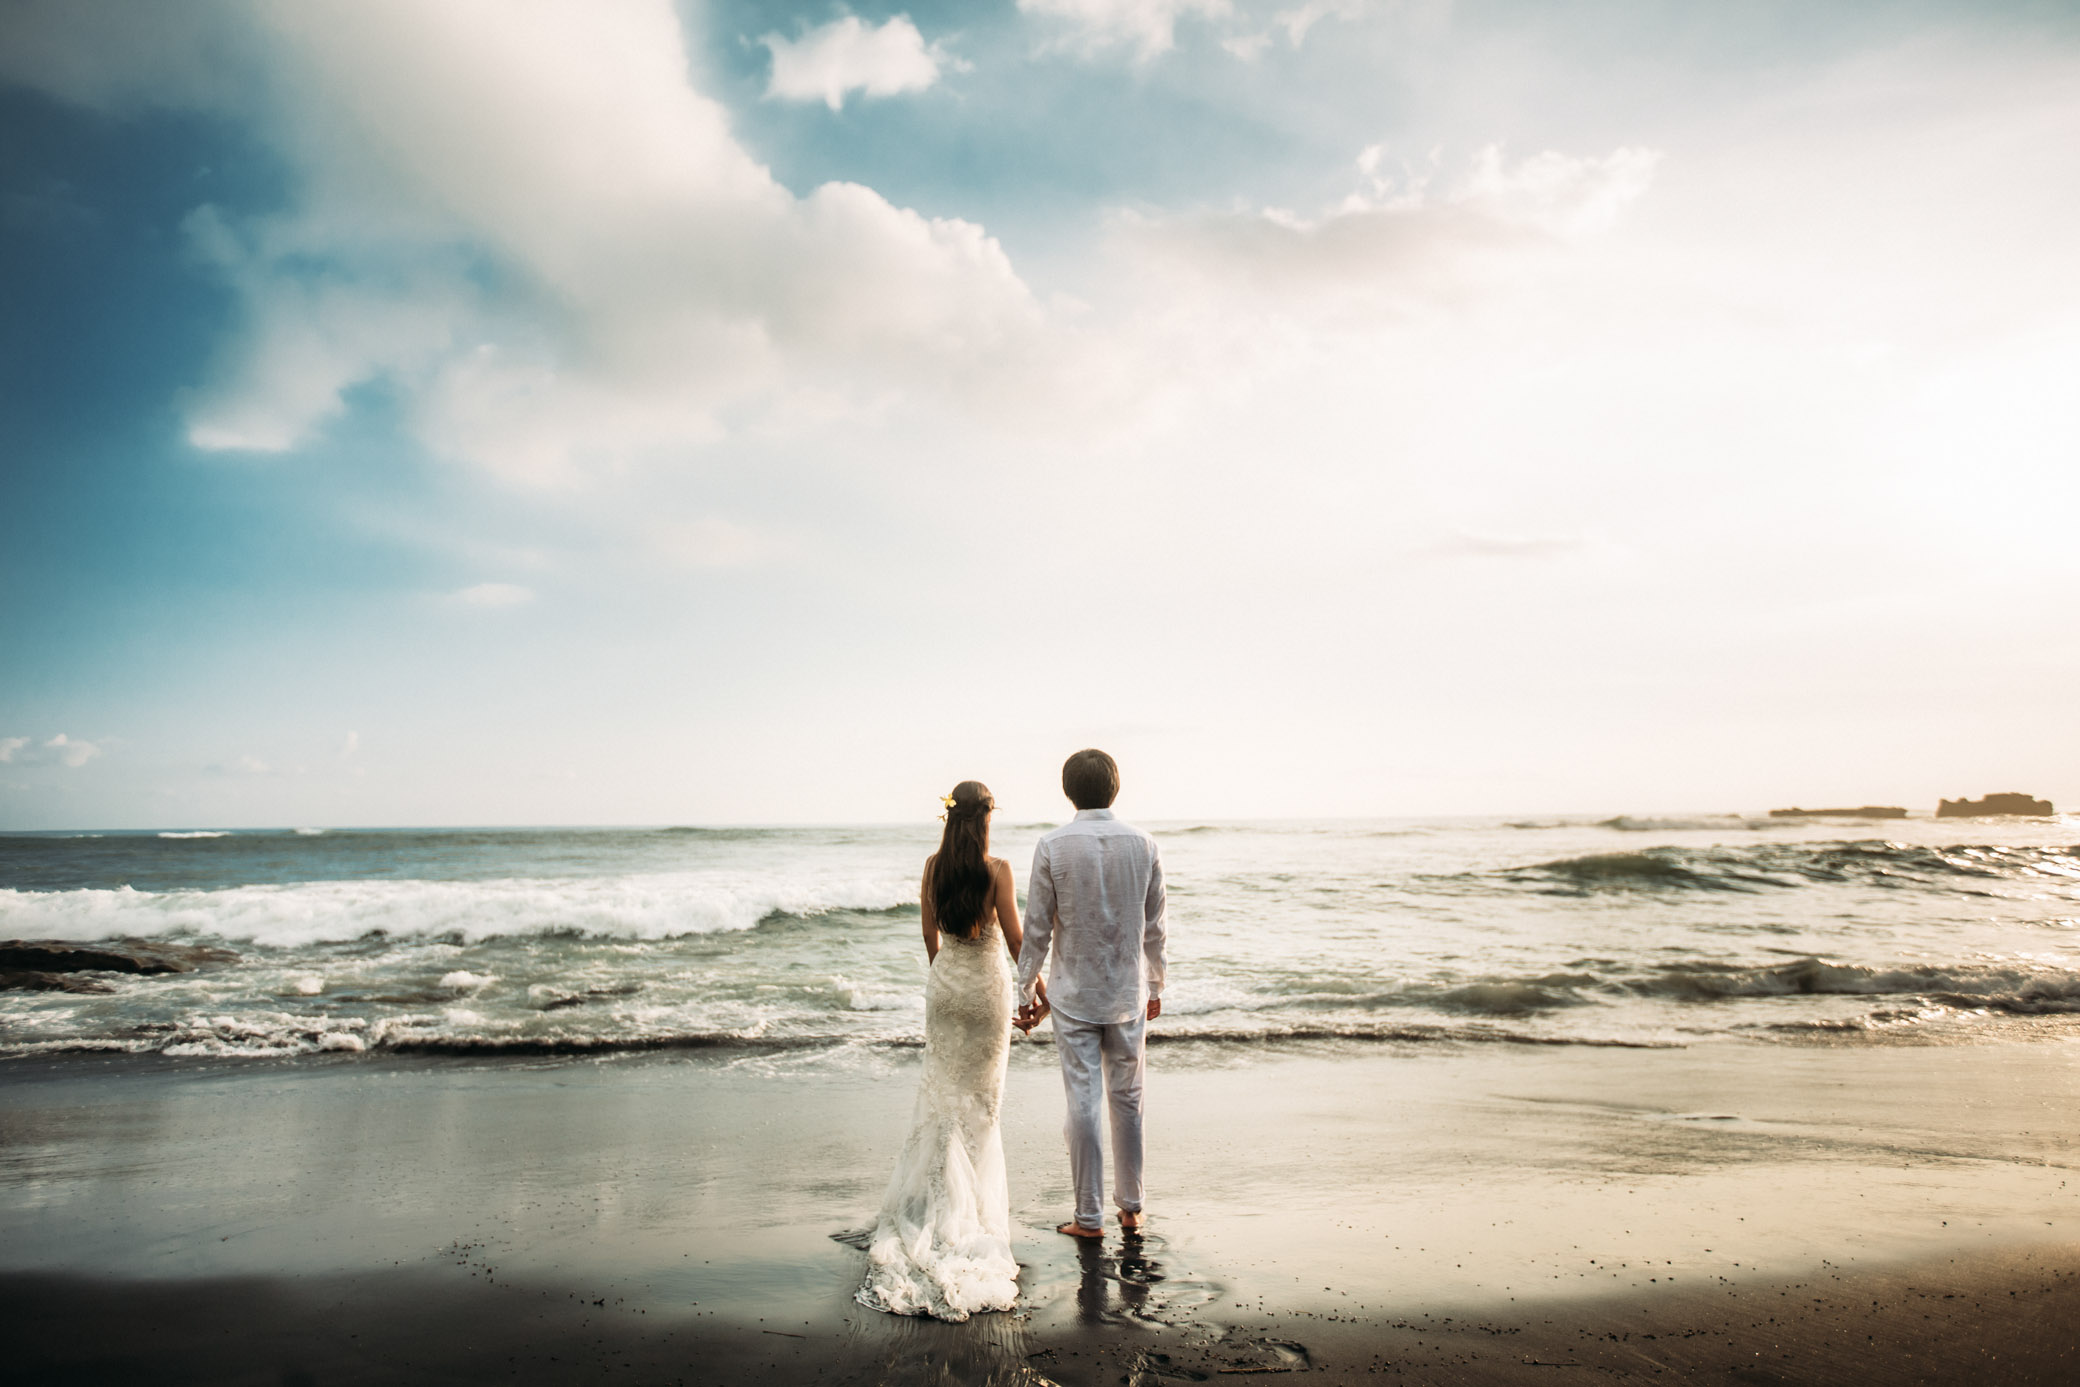 Wedding photoshoot at the ocean